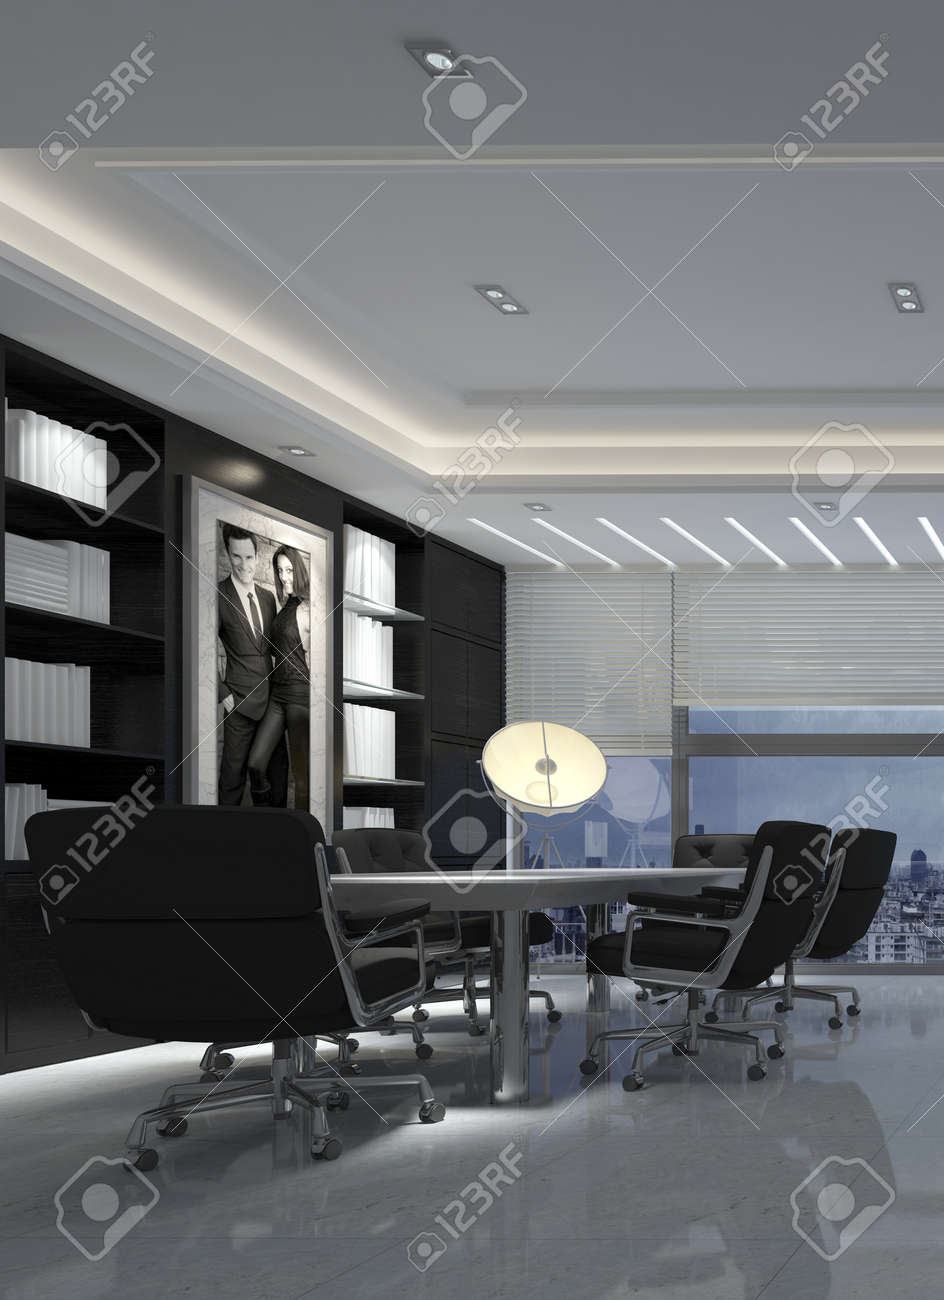 Modern black and white dining room - 3d Render Of A Modern Black And White Dining Room Interior Decor In A Luxury Urban